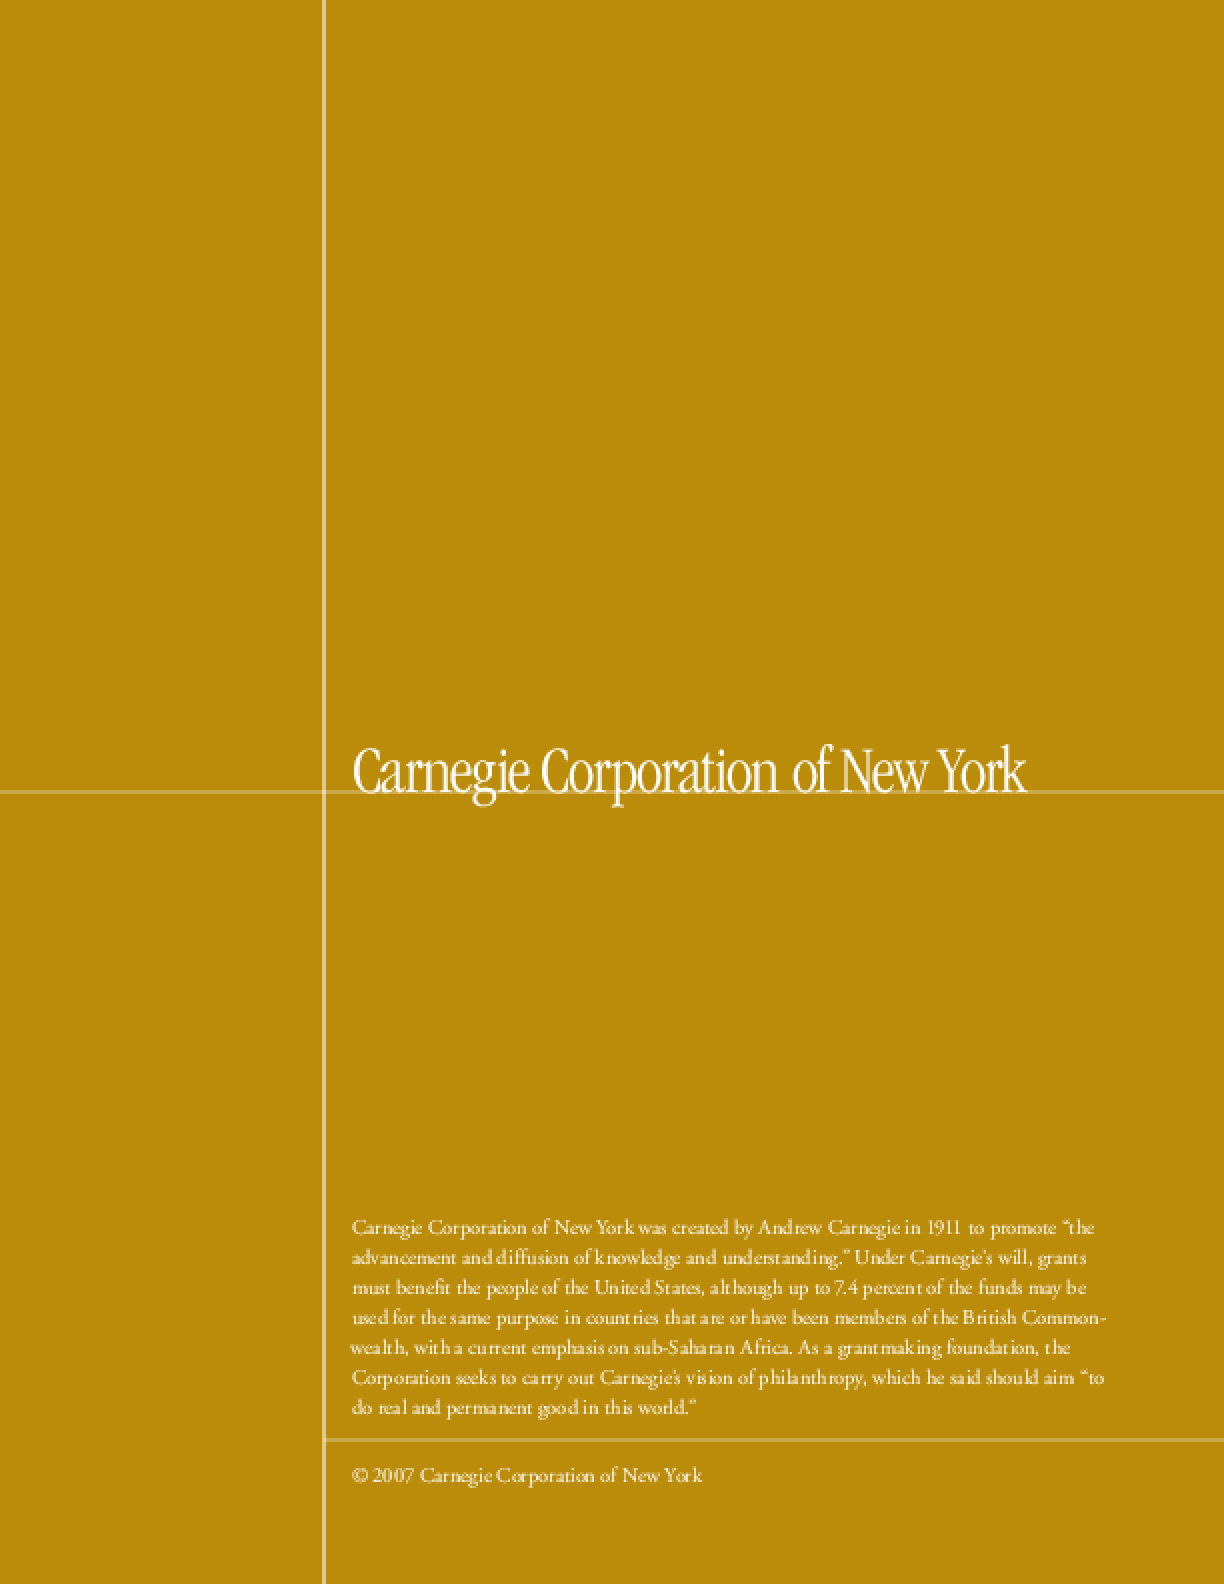 Carnegie Corporation of New York - 2006 Annual Report